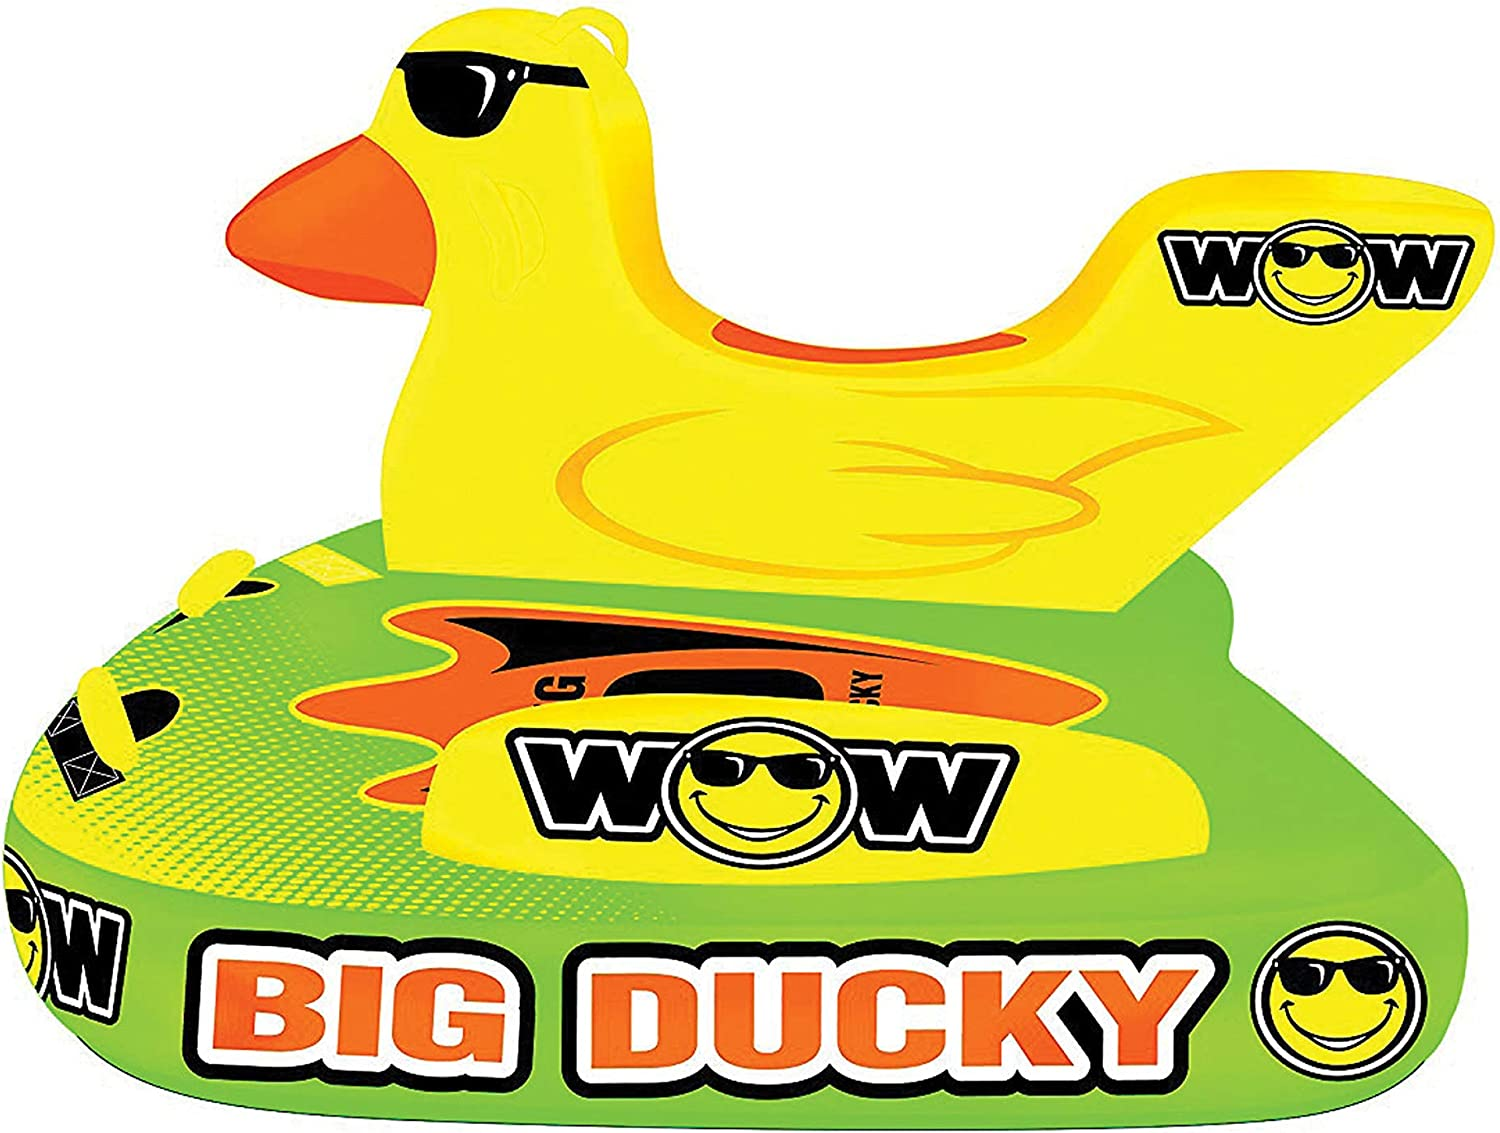 WOW World of Watersports Big Ducky 1 2 or 3 Person Inflatable Towable Deck Tube for Boating | 18-1140